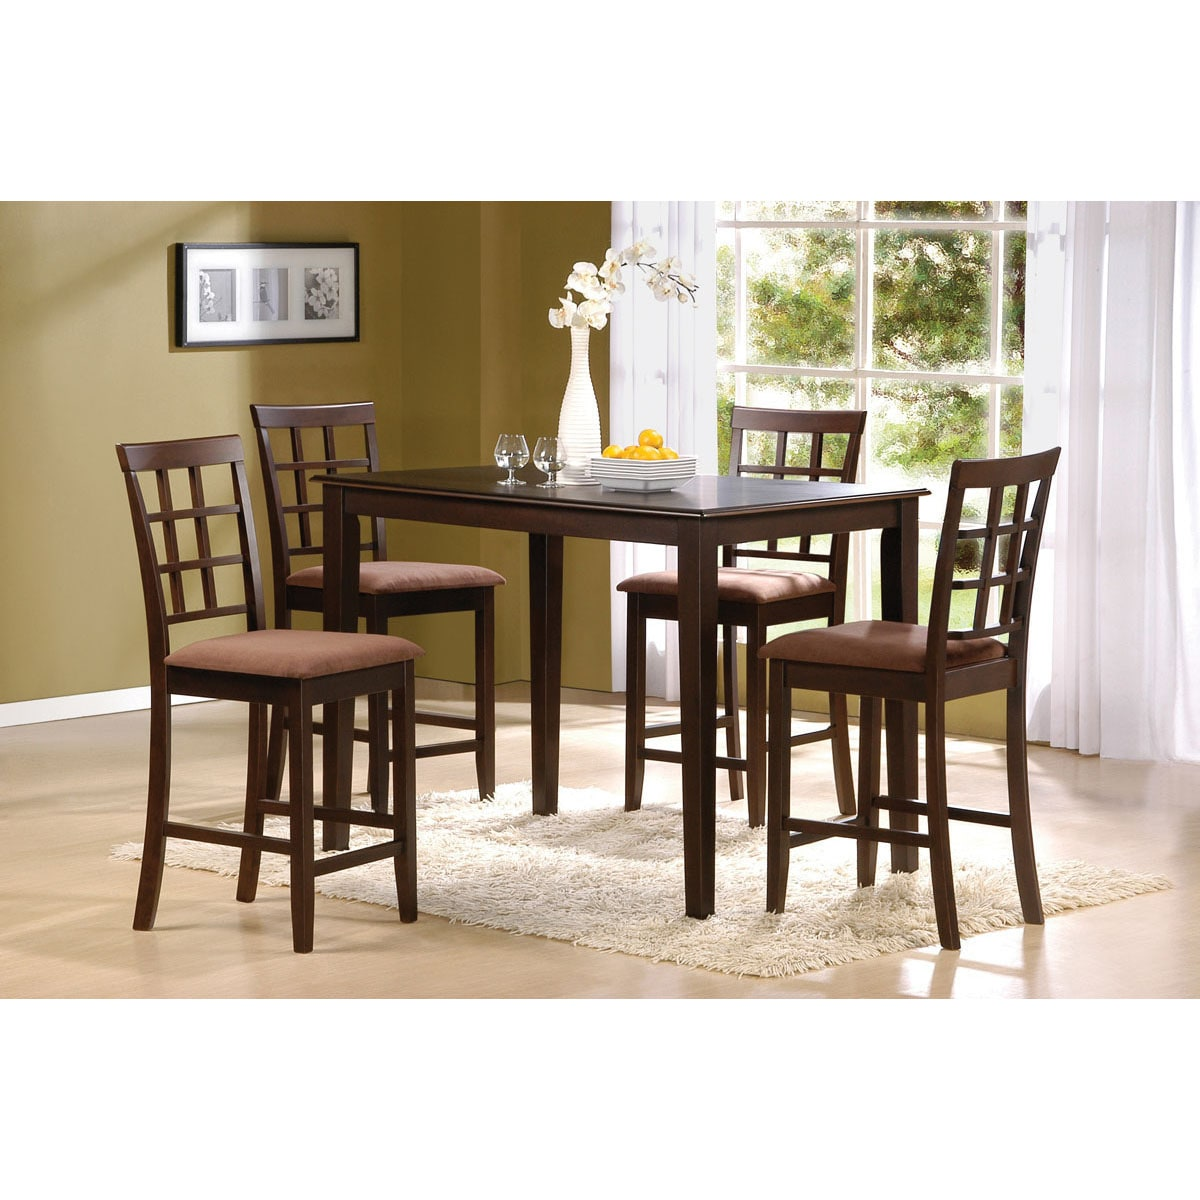 Cardiff 5 Piece Espresso Finish Pack Counter Height Dining Table Set - Overstock™ Shopping - Big ...